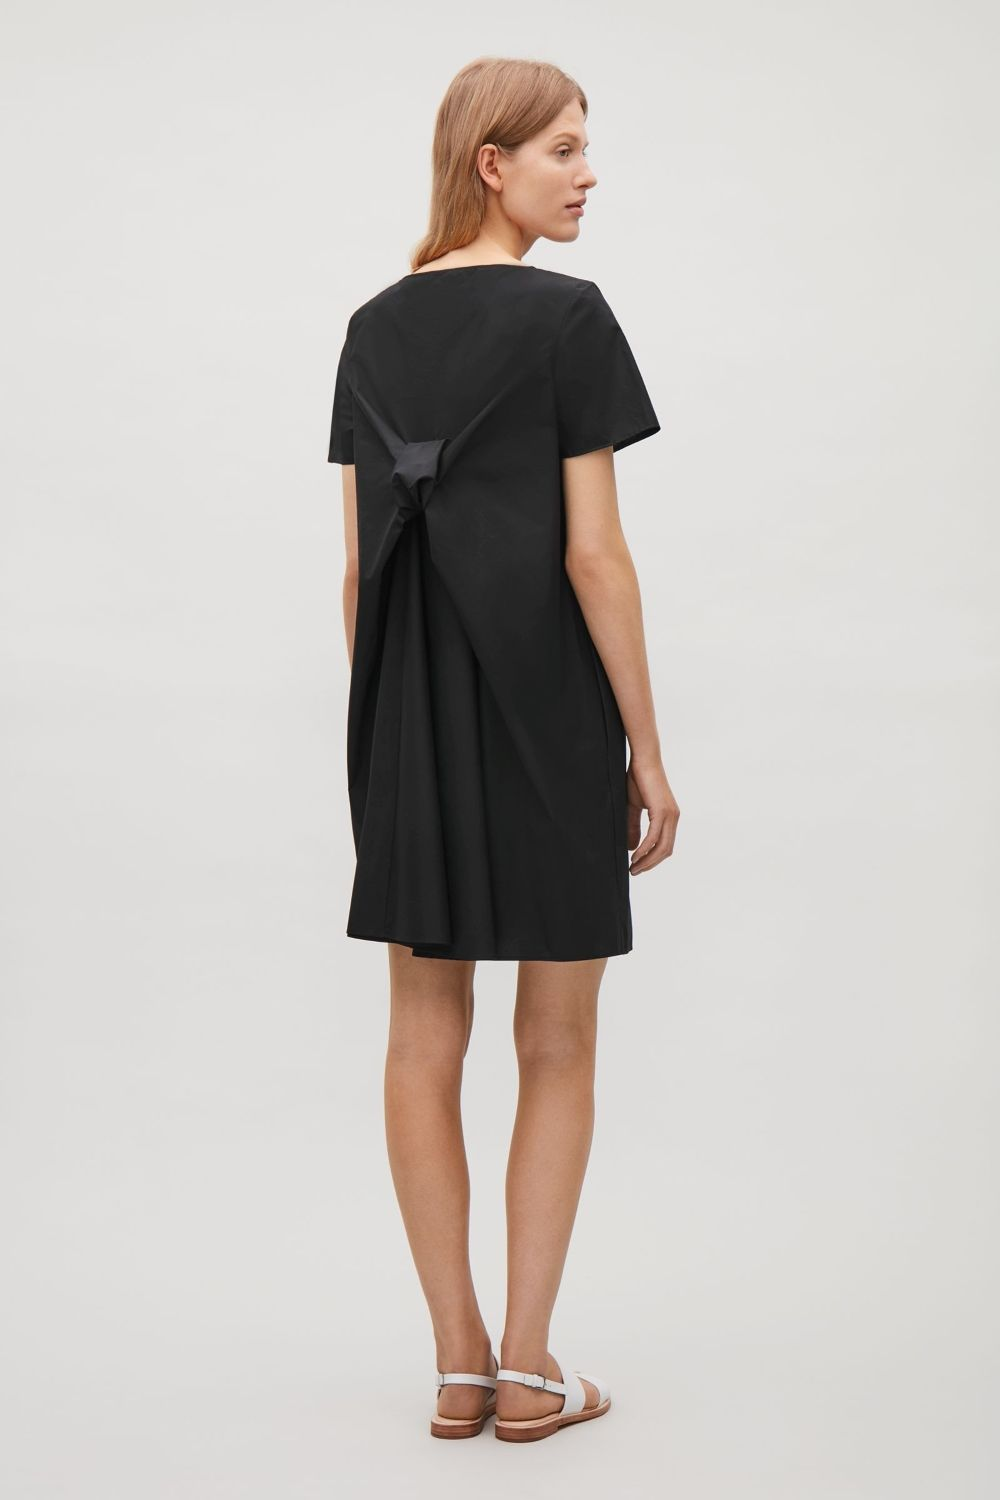 A straight fit this shortsleeve dress has a voluminous draped bow